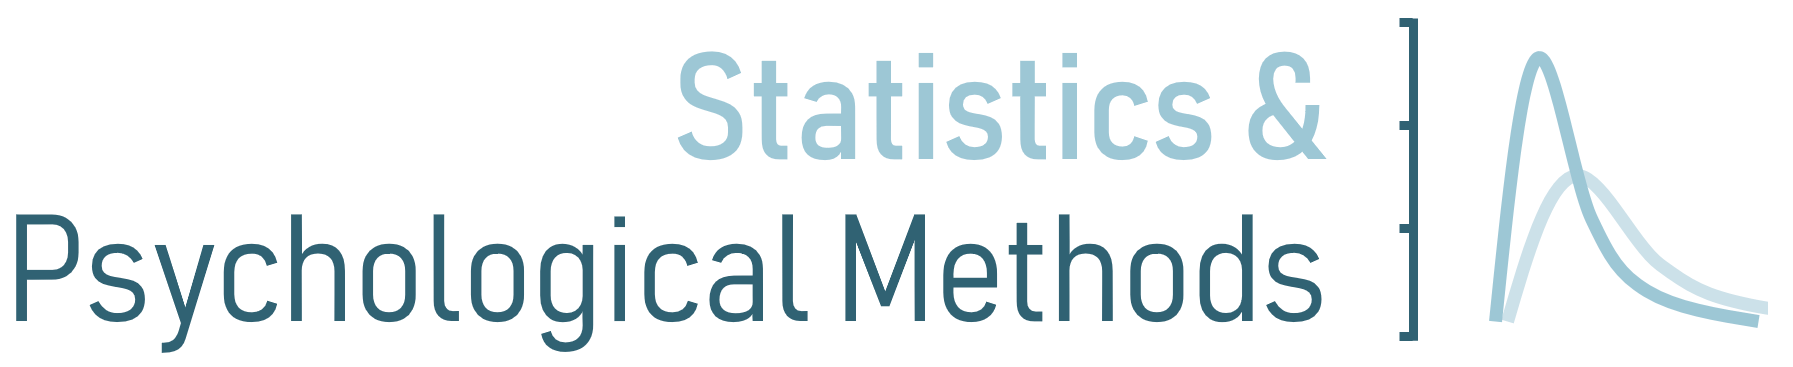 Statistics & Psychological Methods